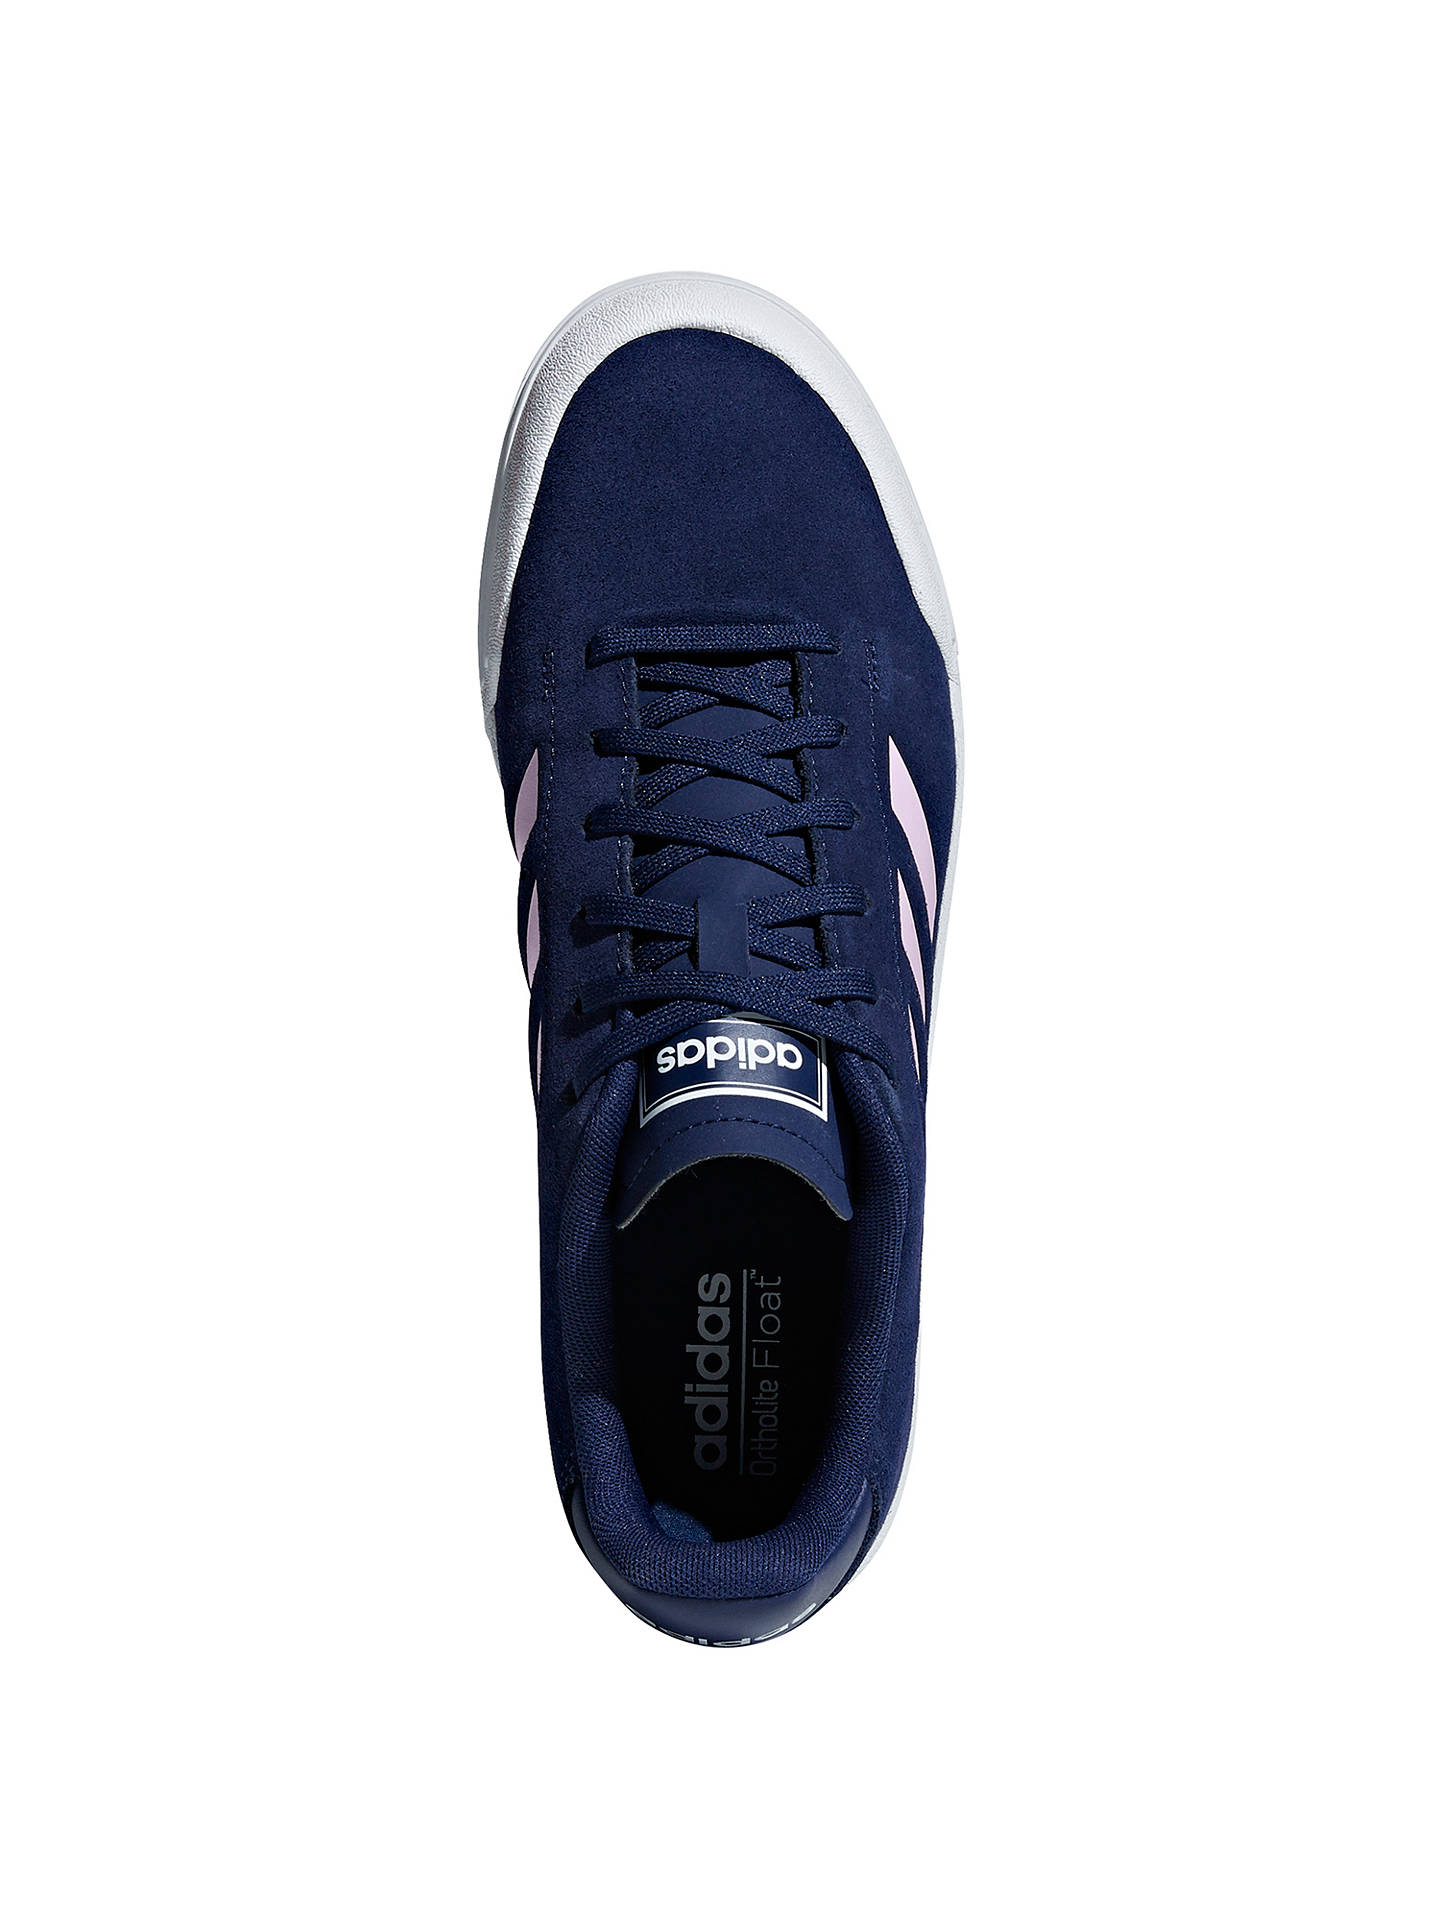 5c48f83fc30 ... Buyadidas Court 70s Men s Trainers